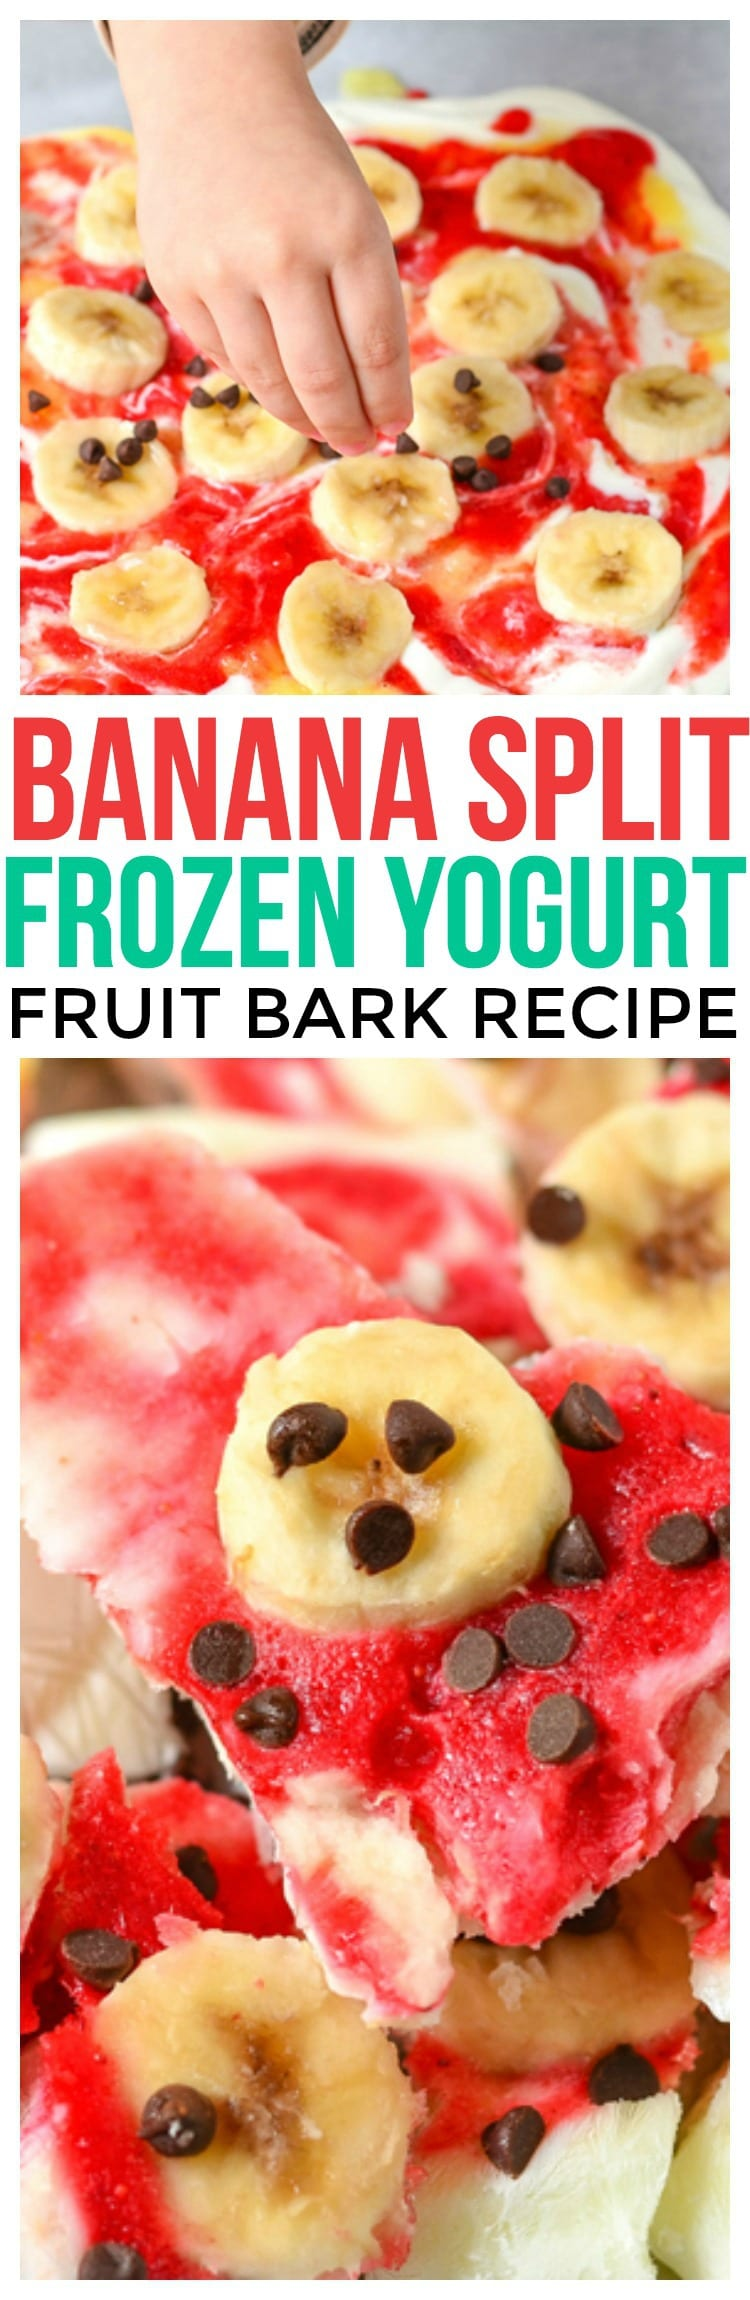 Banana Split Frozen Yogurt Bark, a refreshing frozen dessert banana split dessert recipe healthy yogurt recipes healthy kid friendly recipes